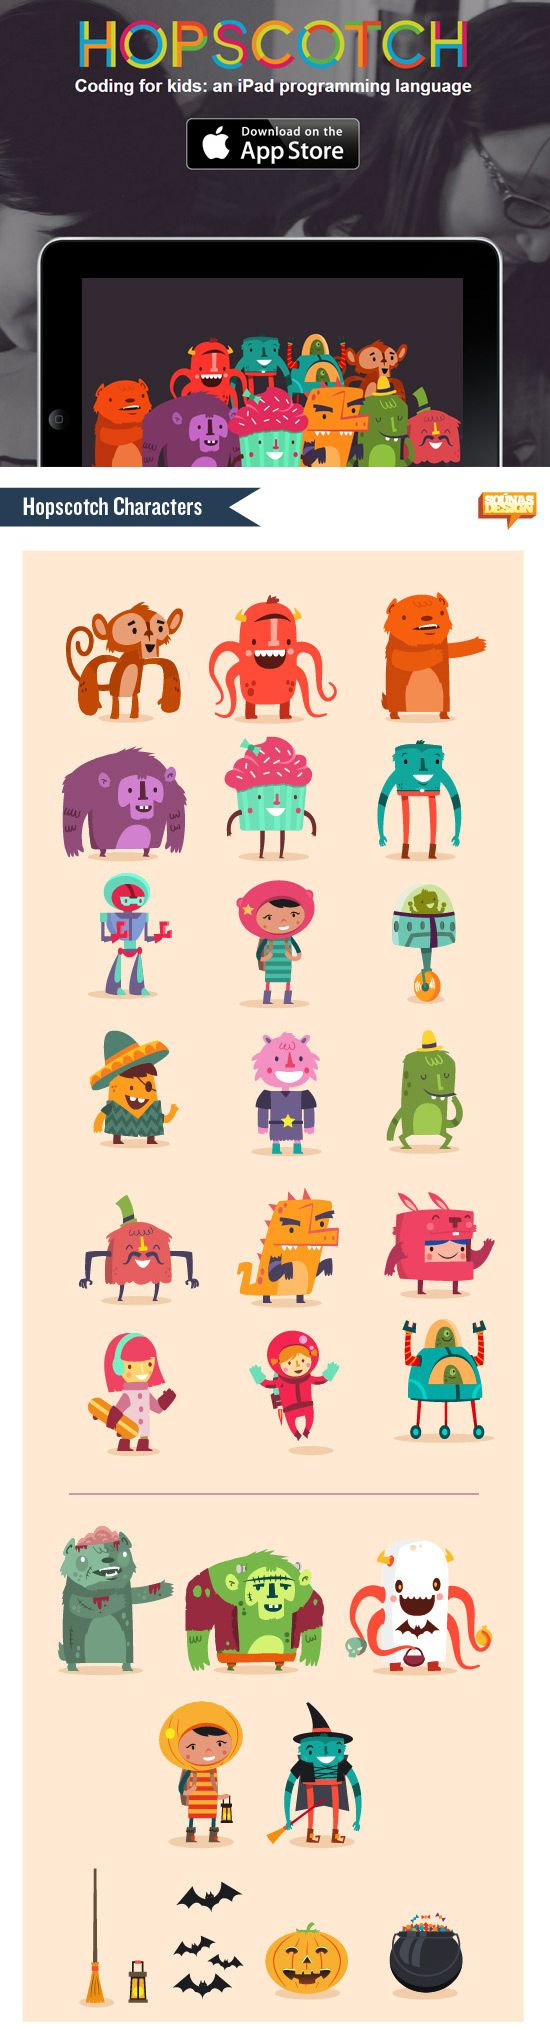 Hopscotch is  great ipad app which helps children to get involved with coding and script developing at early age. It was a pleasure to design a bunch of happy and weird characters for it. You can check  Hopscotch here: https://www.gethopscotch.com/